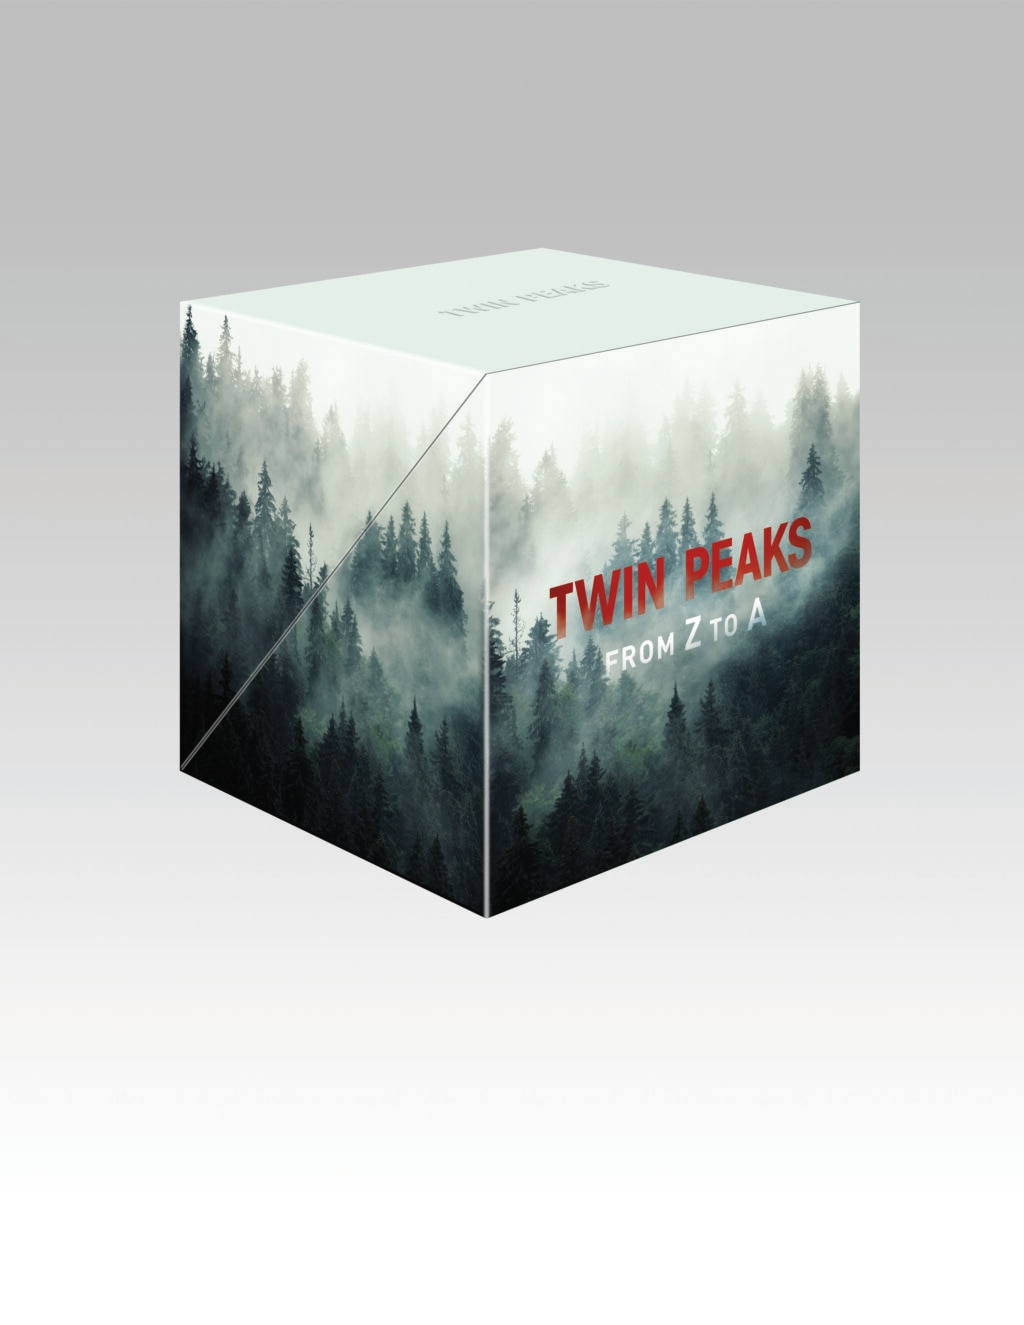 From Z to A Cube 1024x1325 - TWIN PEAKS: FROM Z TO A Is A Damn Fine Collection!